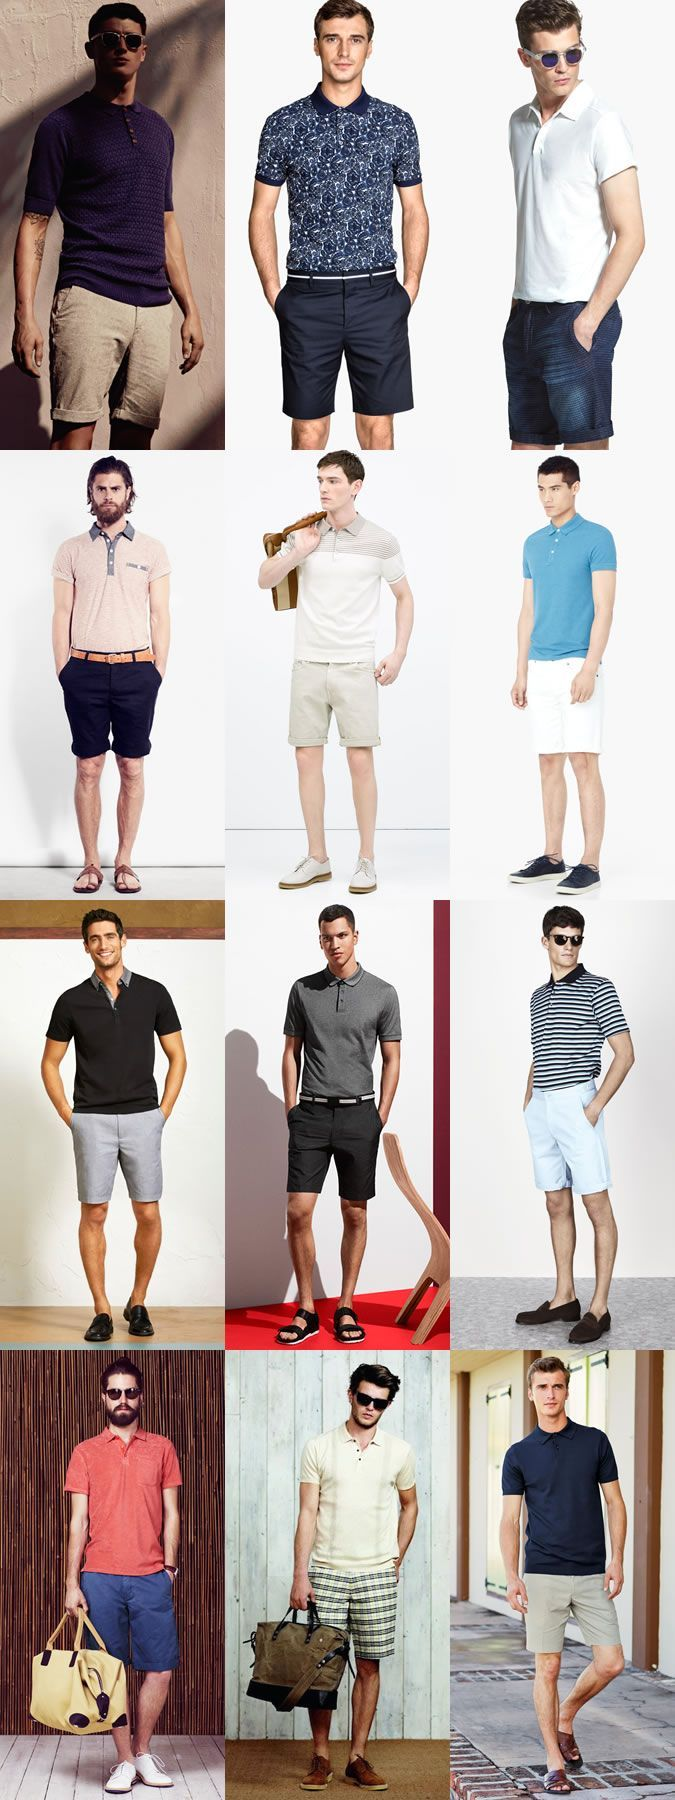 9eb013cb Men's Polo Shirts and Shorts Outfit Inspiration Lookbook | Casual ...